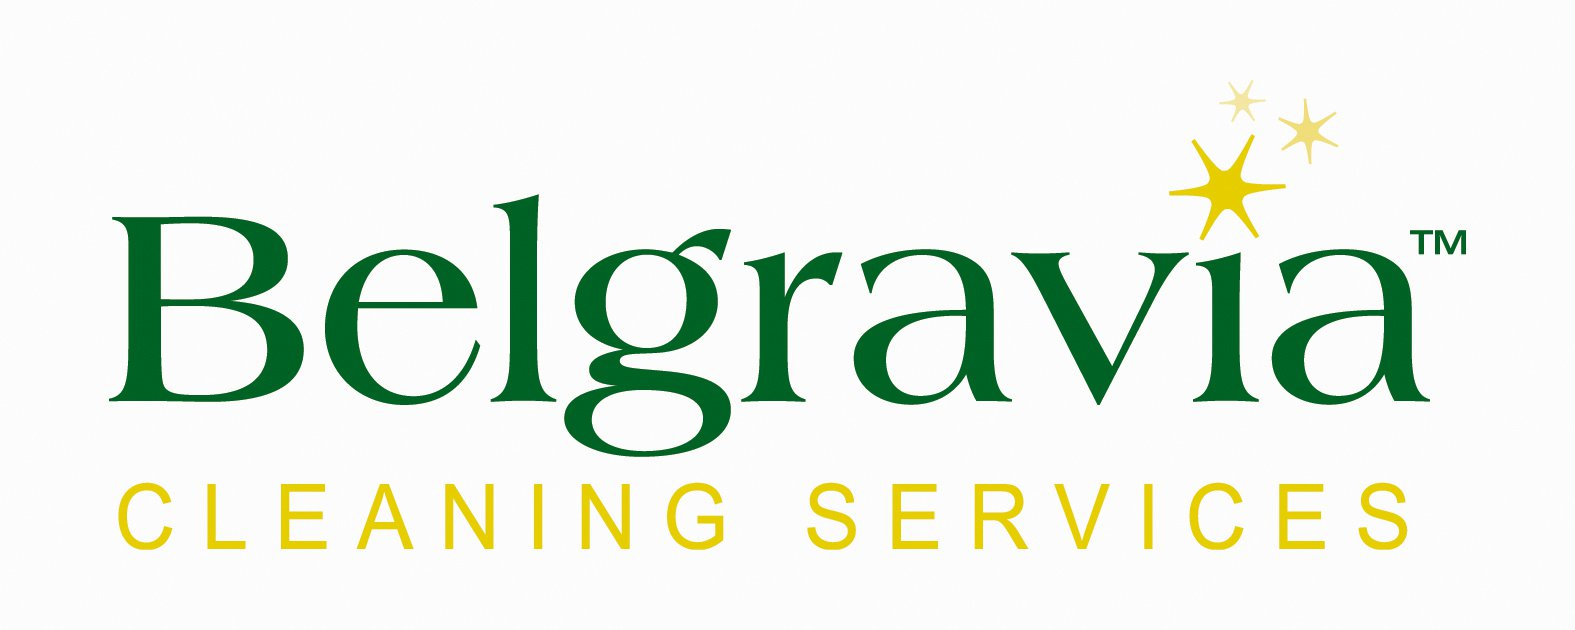 Belgravia Cleaning Services